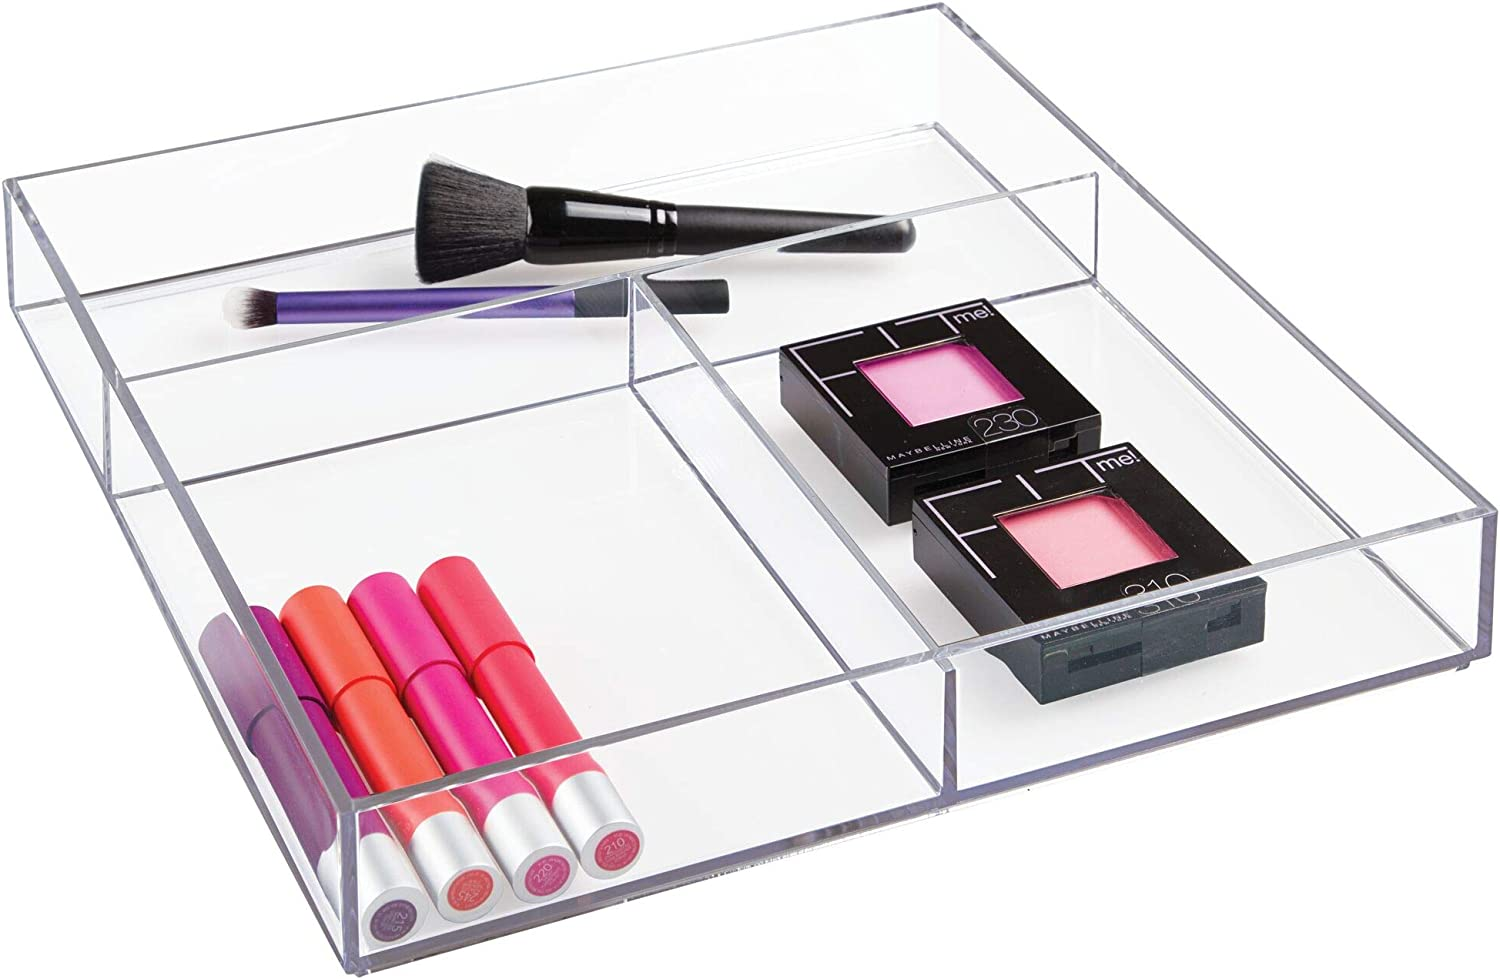 iDesign Clarity Organiser Tray Extra Large Plastic Drawer Insert Works Well as Accessories Organiser Clear